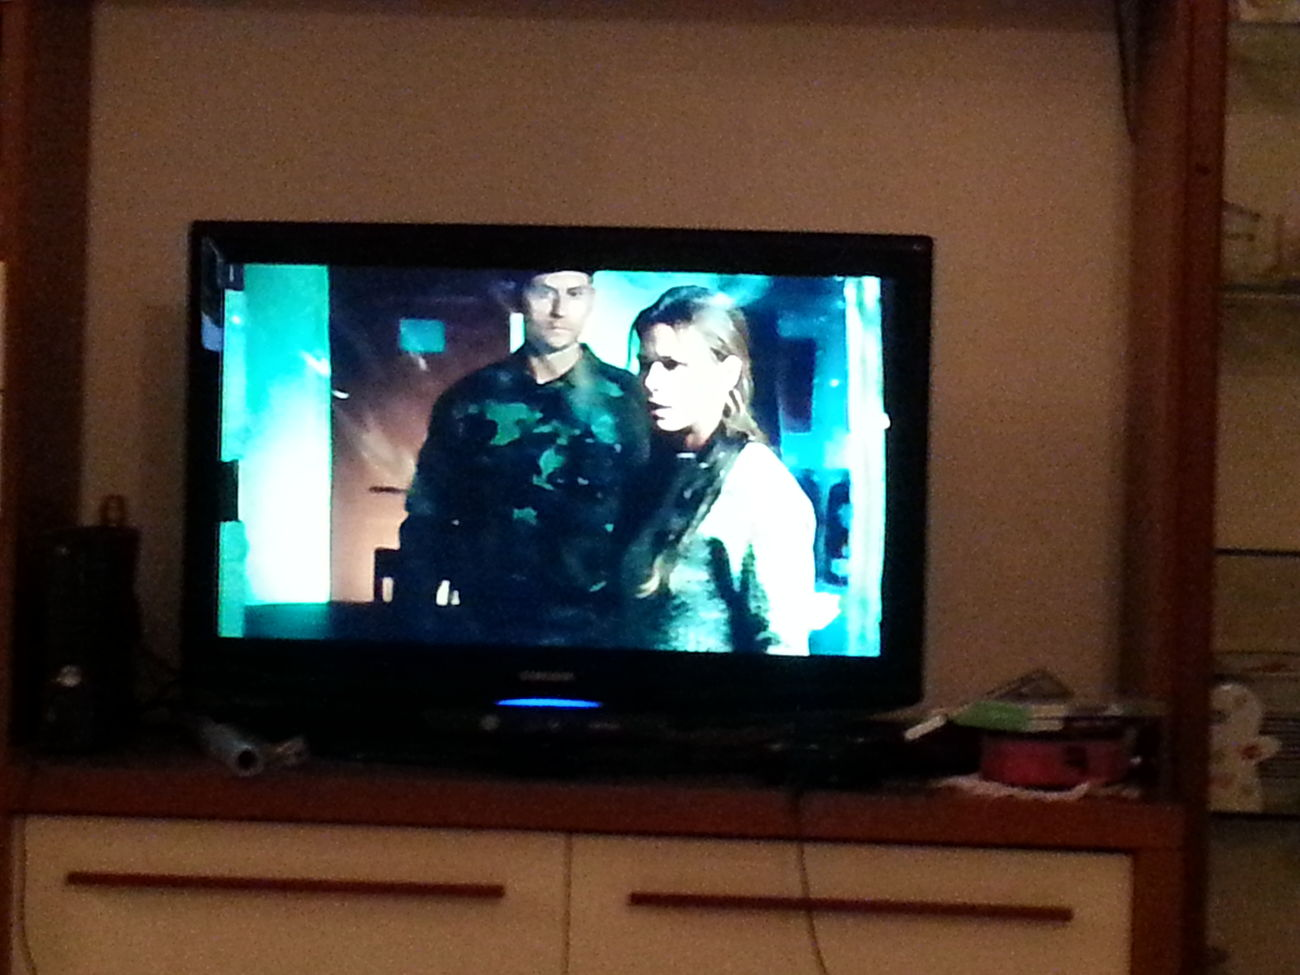 The Last Ship I Love This Program Relaxing At Home I'm Back